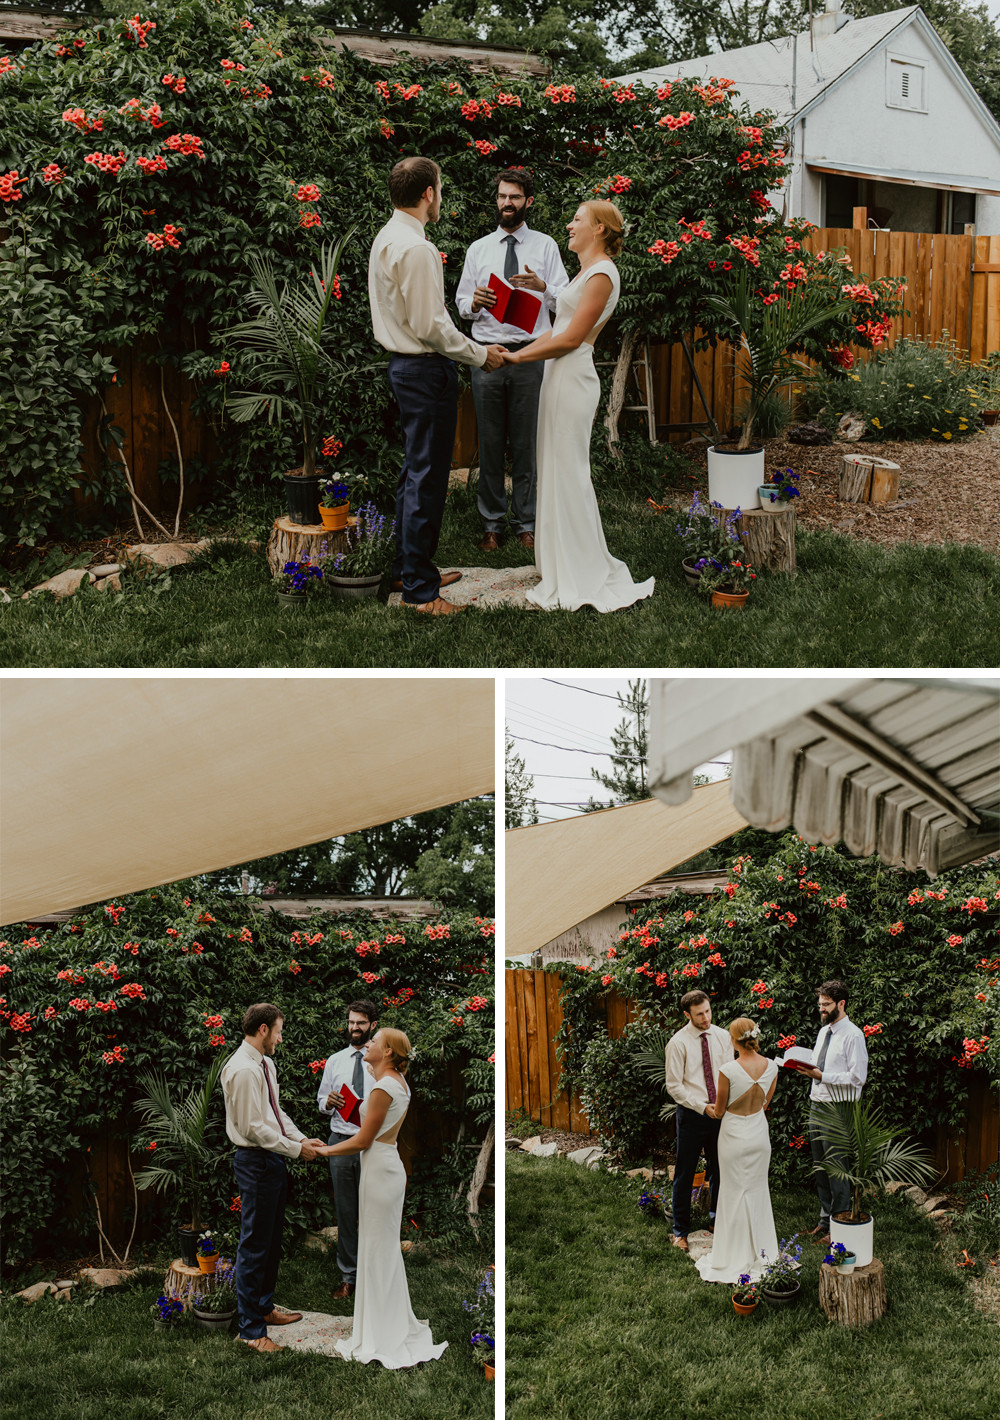 Hillary and Will holding hands and saying their vows.